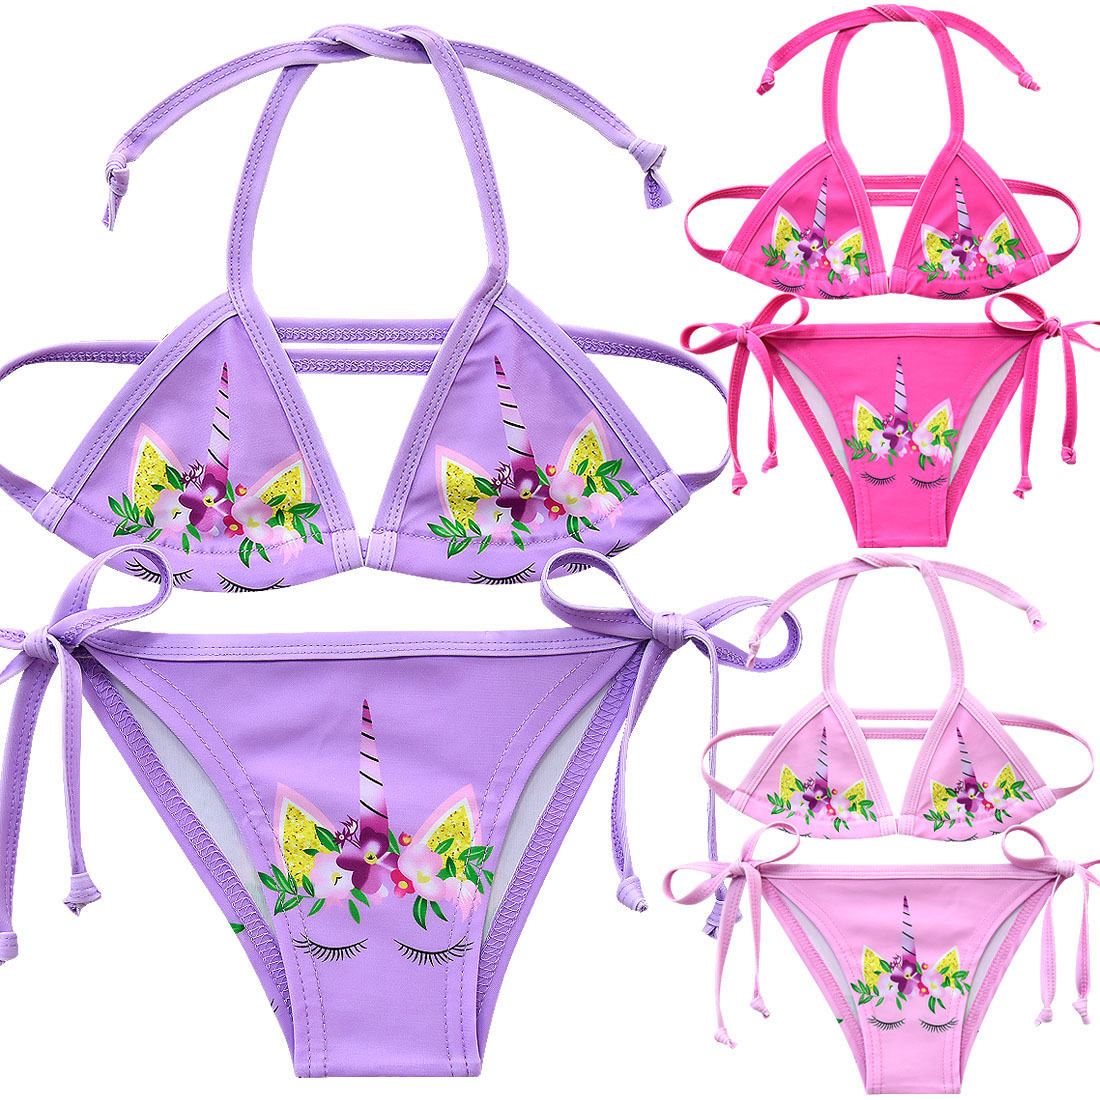 2019 Girls Swimsuit 3-12years Two Piece Unicorn Children's Swimwear Kids Swiming Bikini Suit Children Girls Beach Wear G48-8069